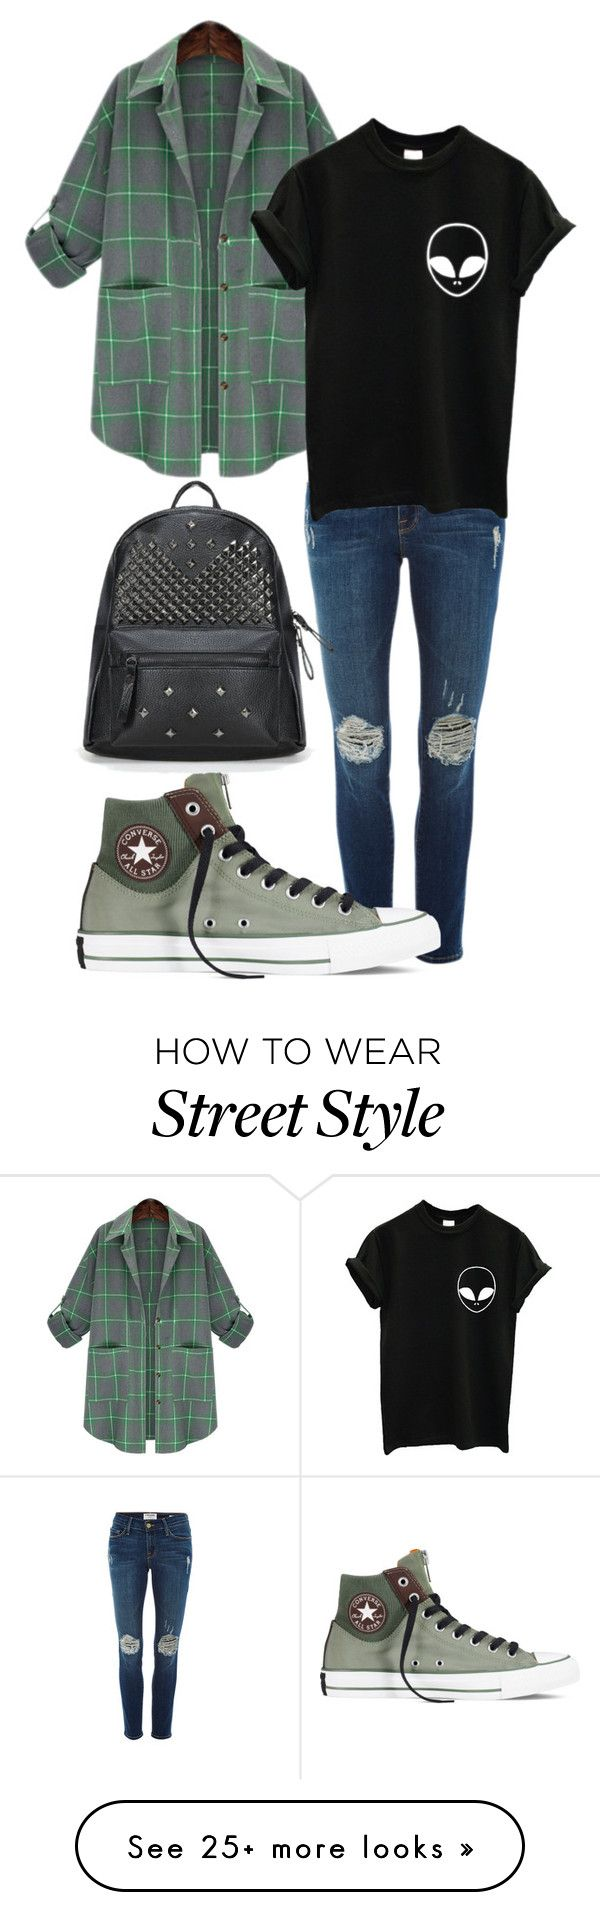 """""""Street style"""" by phanh170102 on Polyvore featuring Frame Denim, Converse, women's clothing, women's fashion, women, female, woman, misses and juniors"""